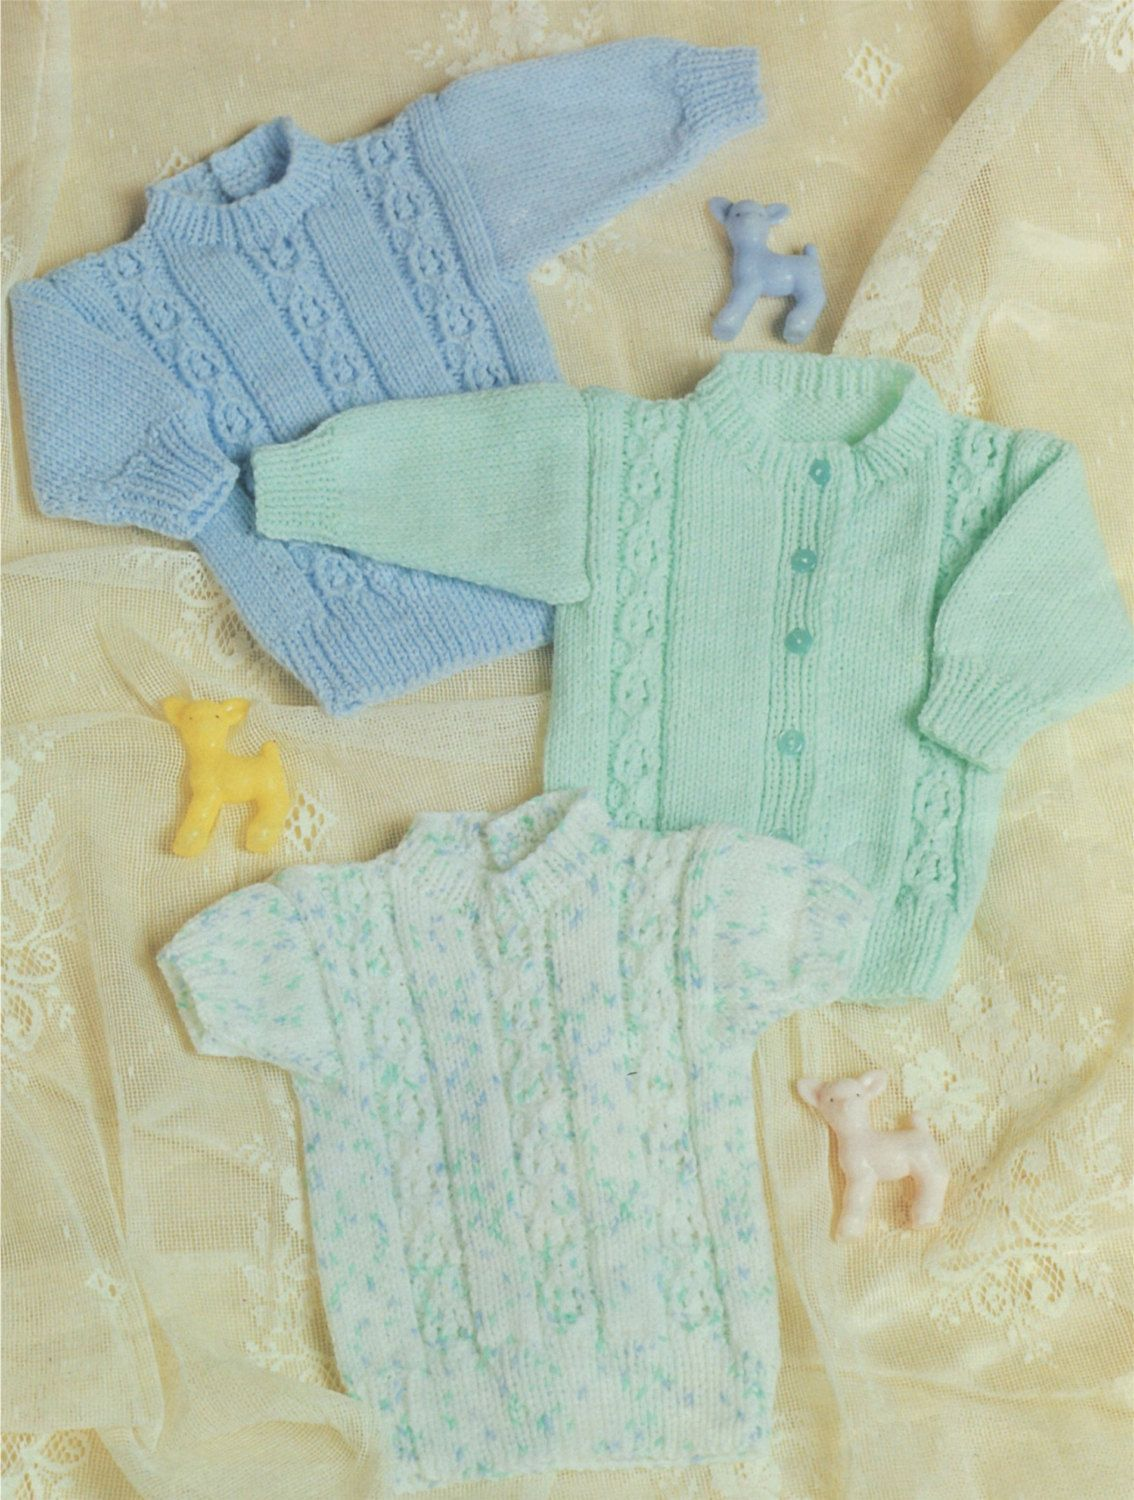 Premature baby sweater and cardigan knitting pattern babies boy premature baby sweater and cardigan knitting pattern babies boy or girl 14 16 and 18 inch chest 36 41 and 46 cm pdf digital download bankloansurffo Choice Image